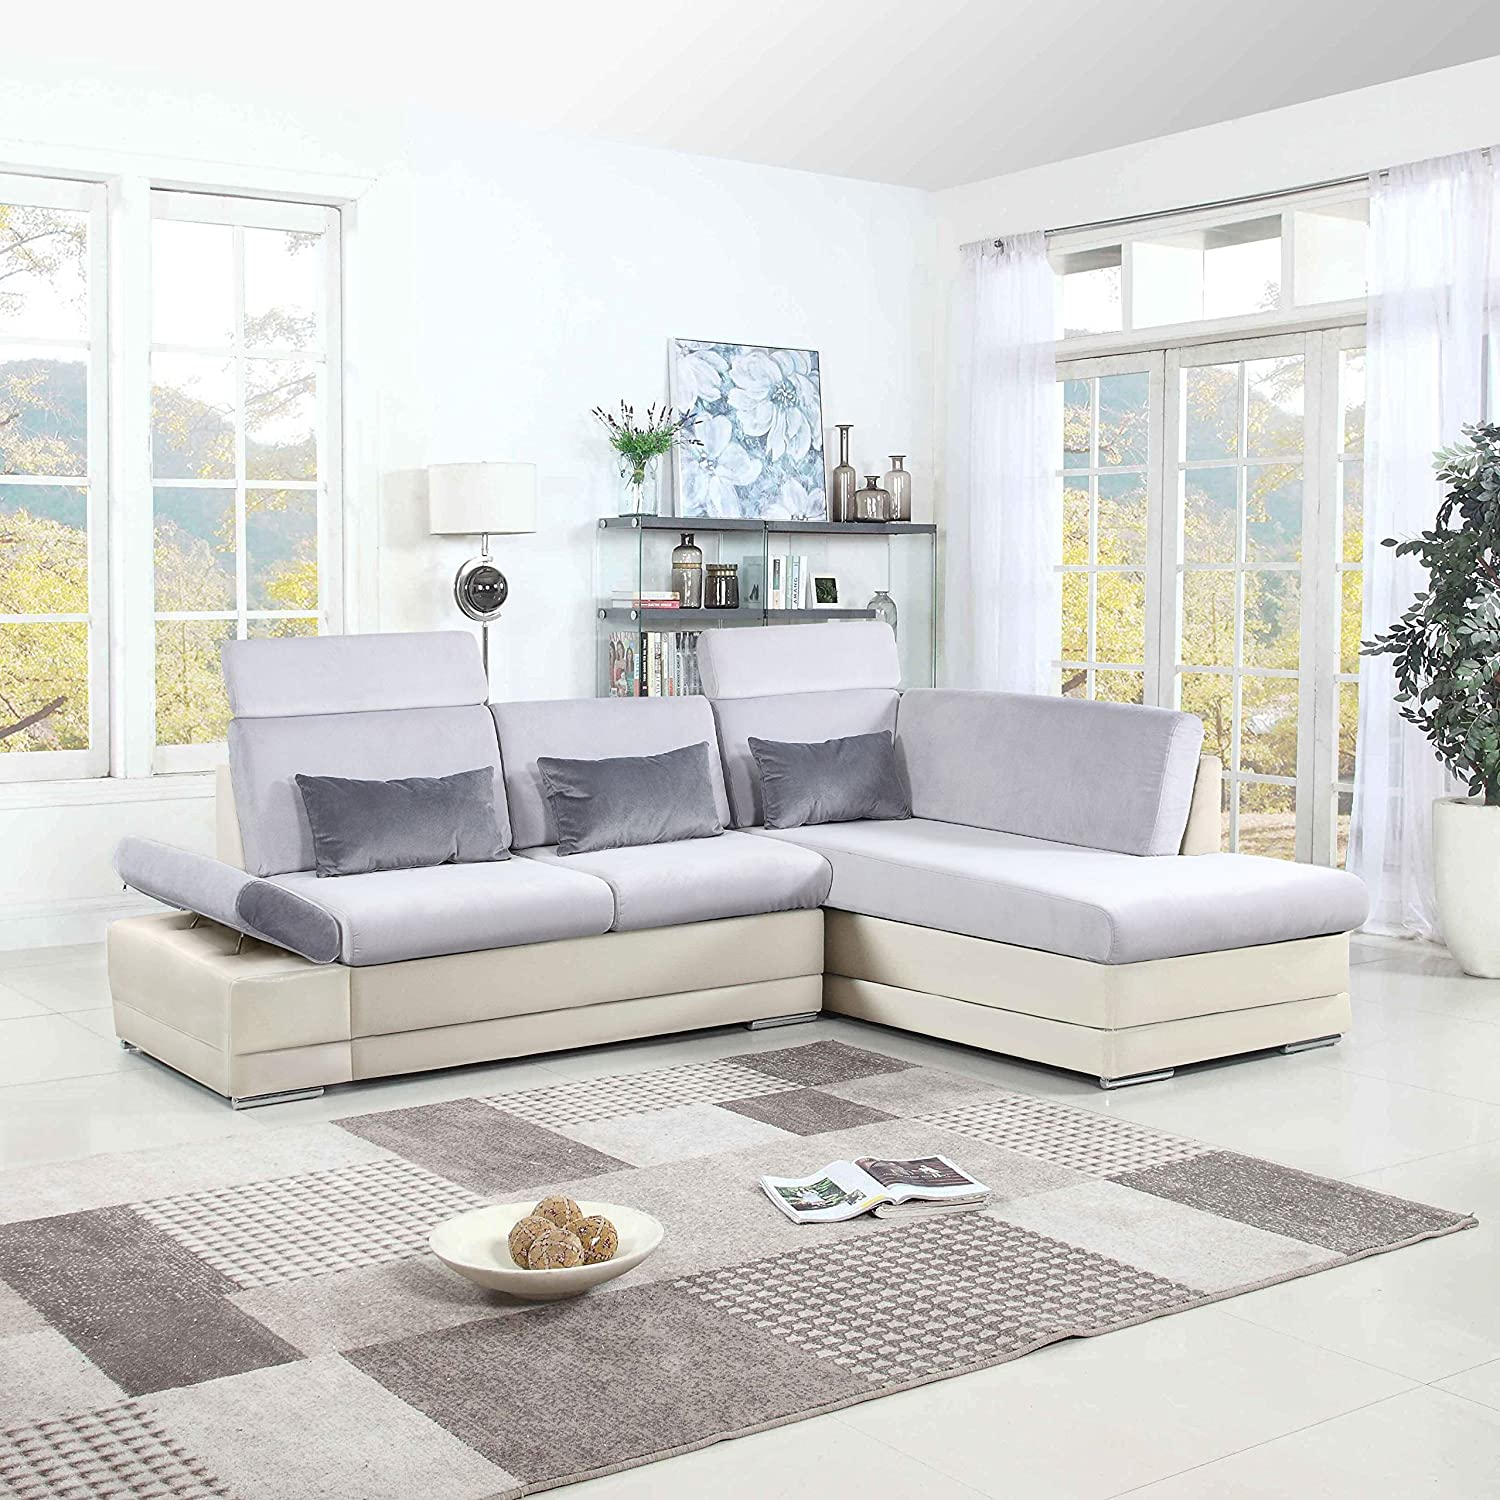 Amazon com classic large faux leather and microfiber l shape sectional sofa couch with chaise lounge and adjustable headrest white light grey kitchen